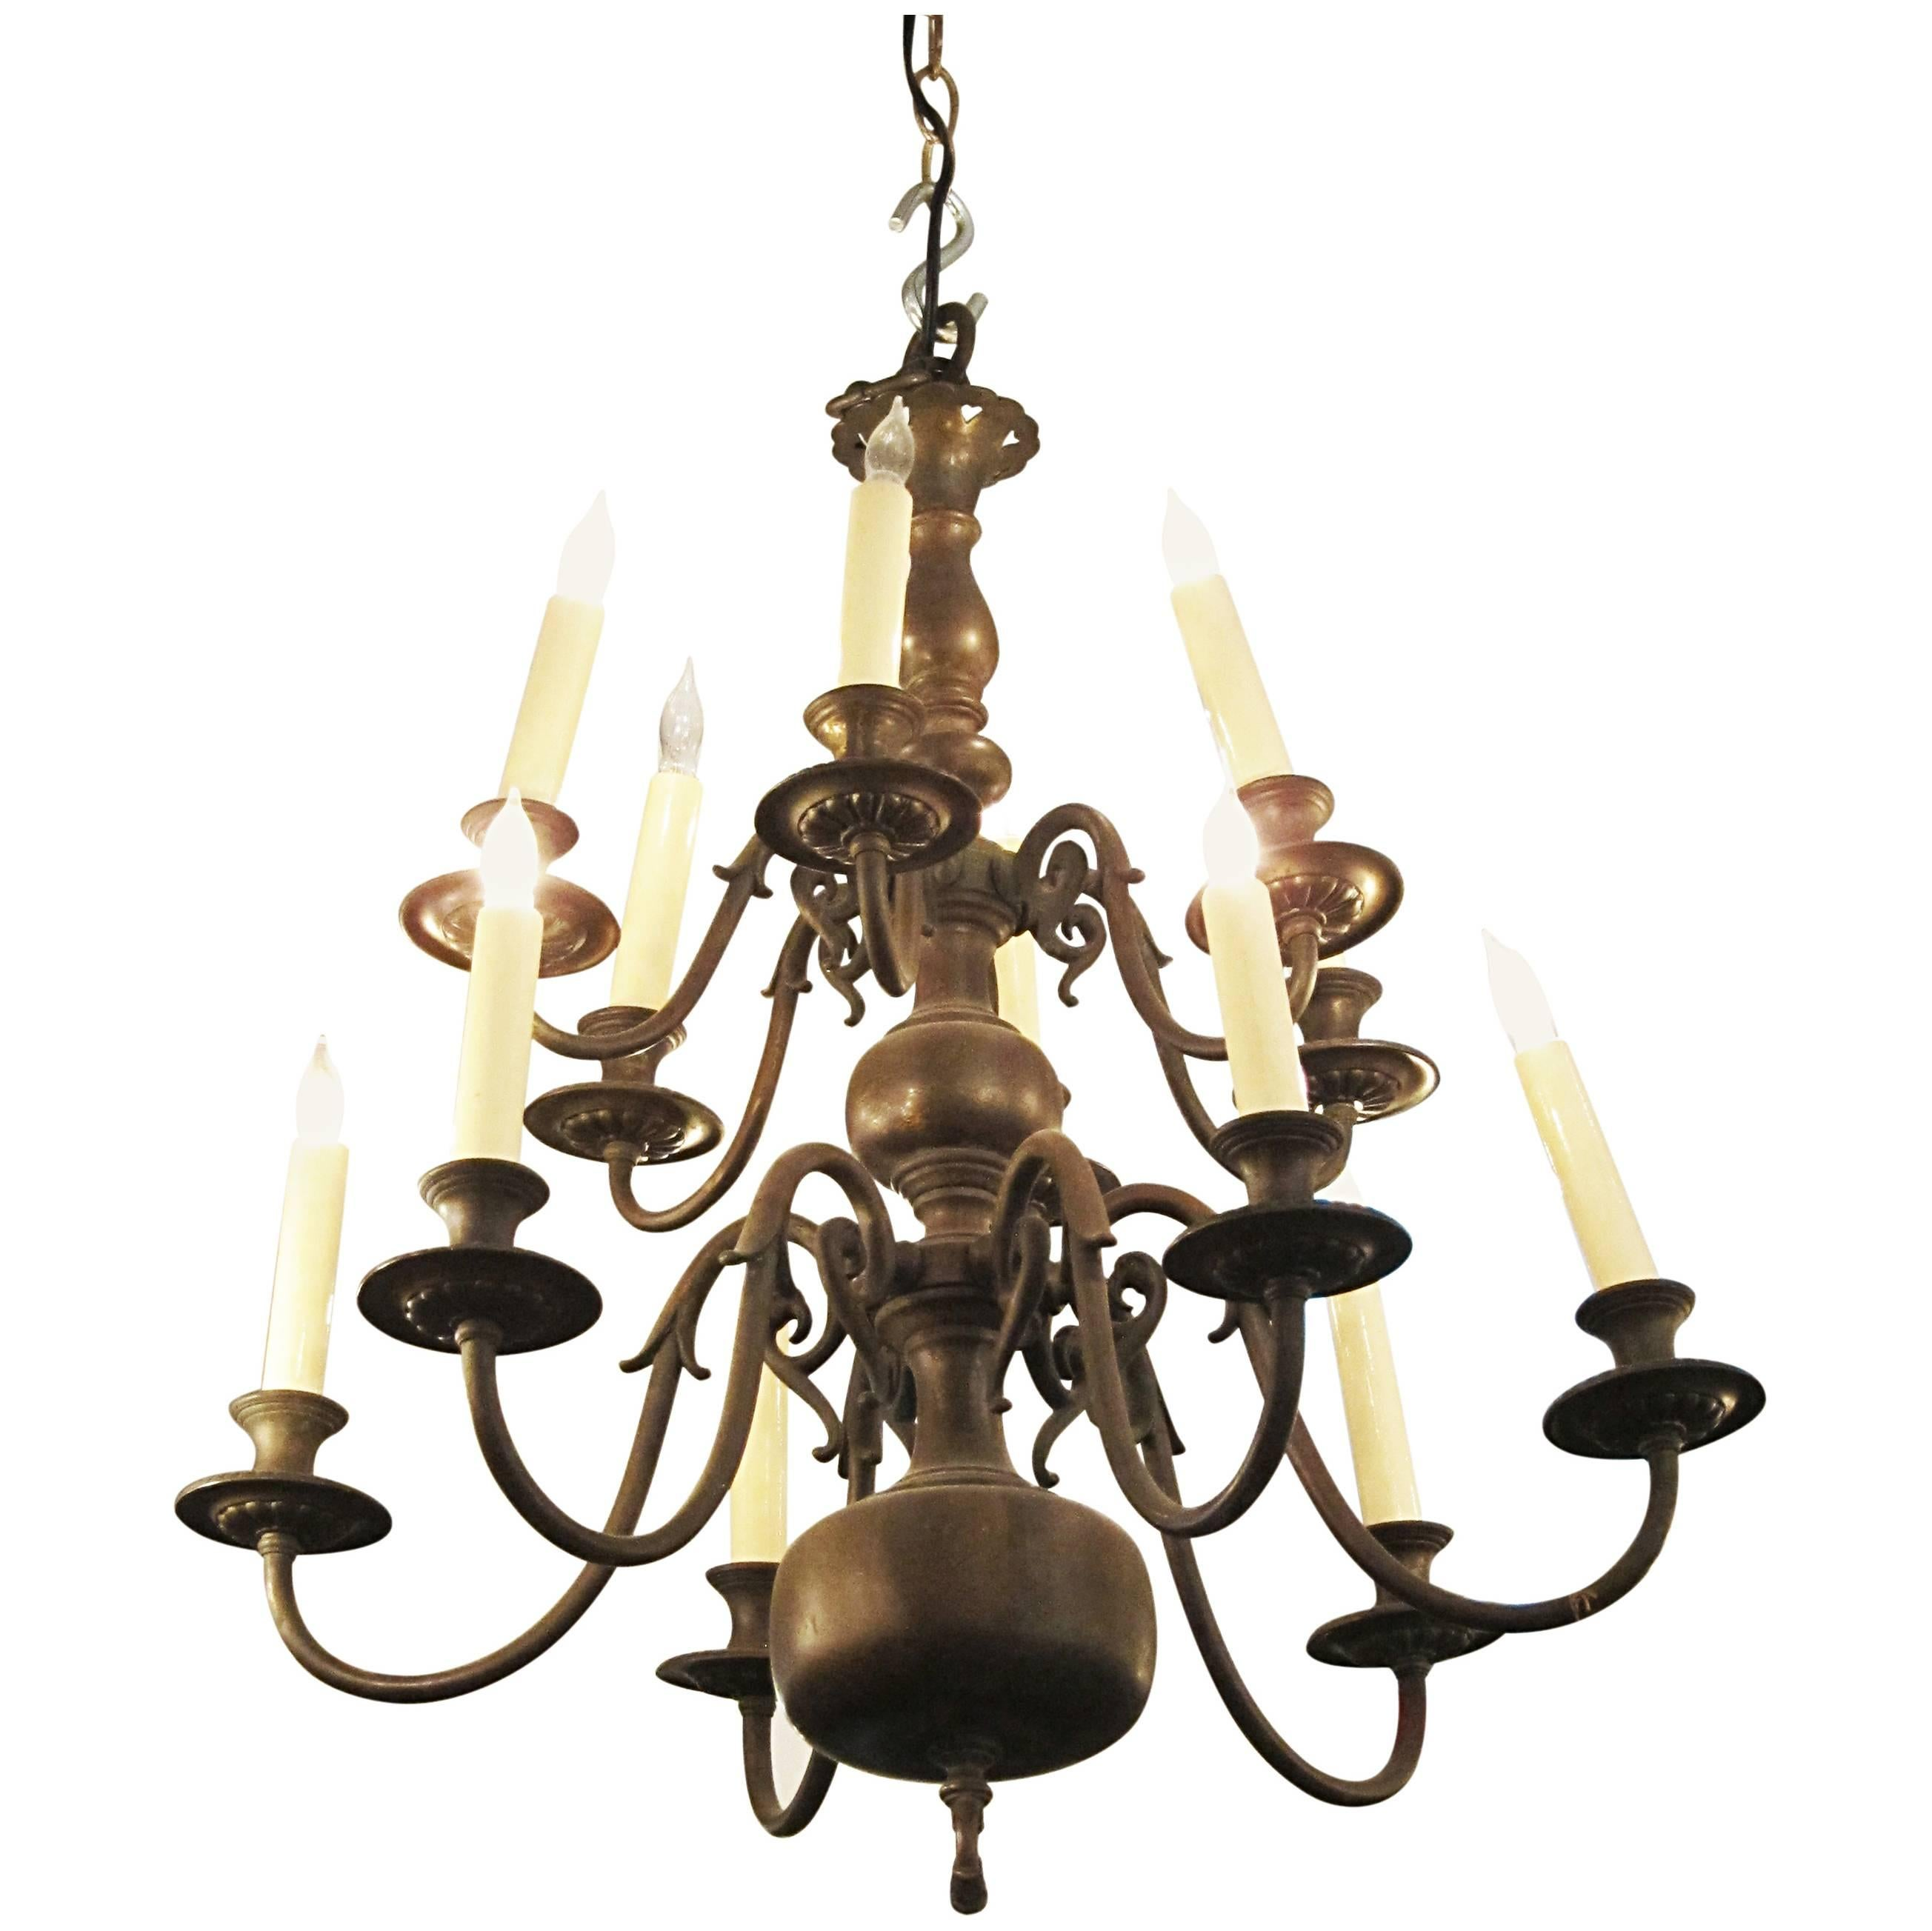 1900s American Made Dutch Colonial Style Twelve-Light Chandelier